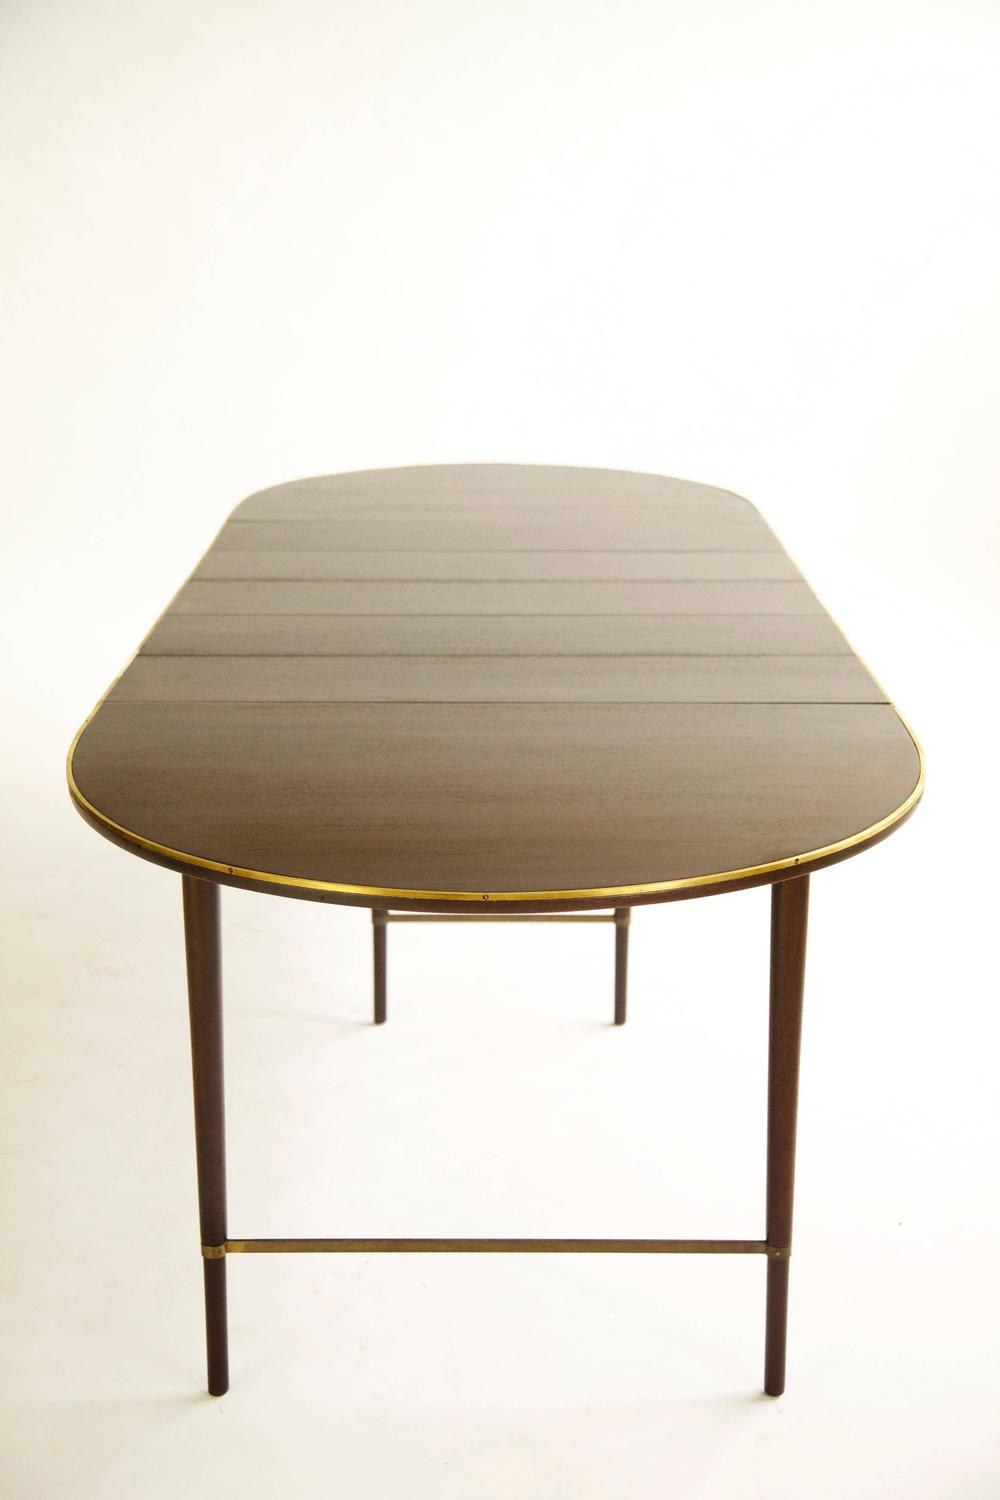 Paul McCobb Dining Table For Sale At 1stdibs